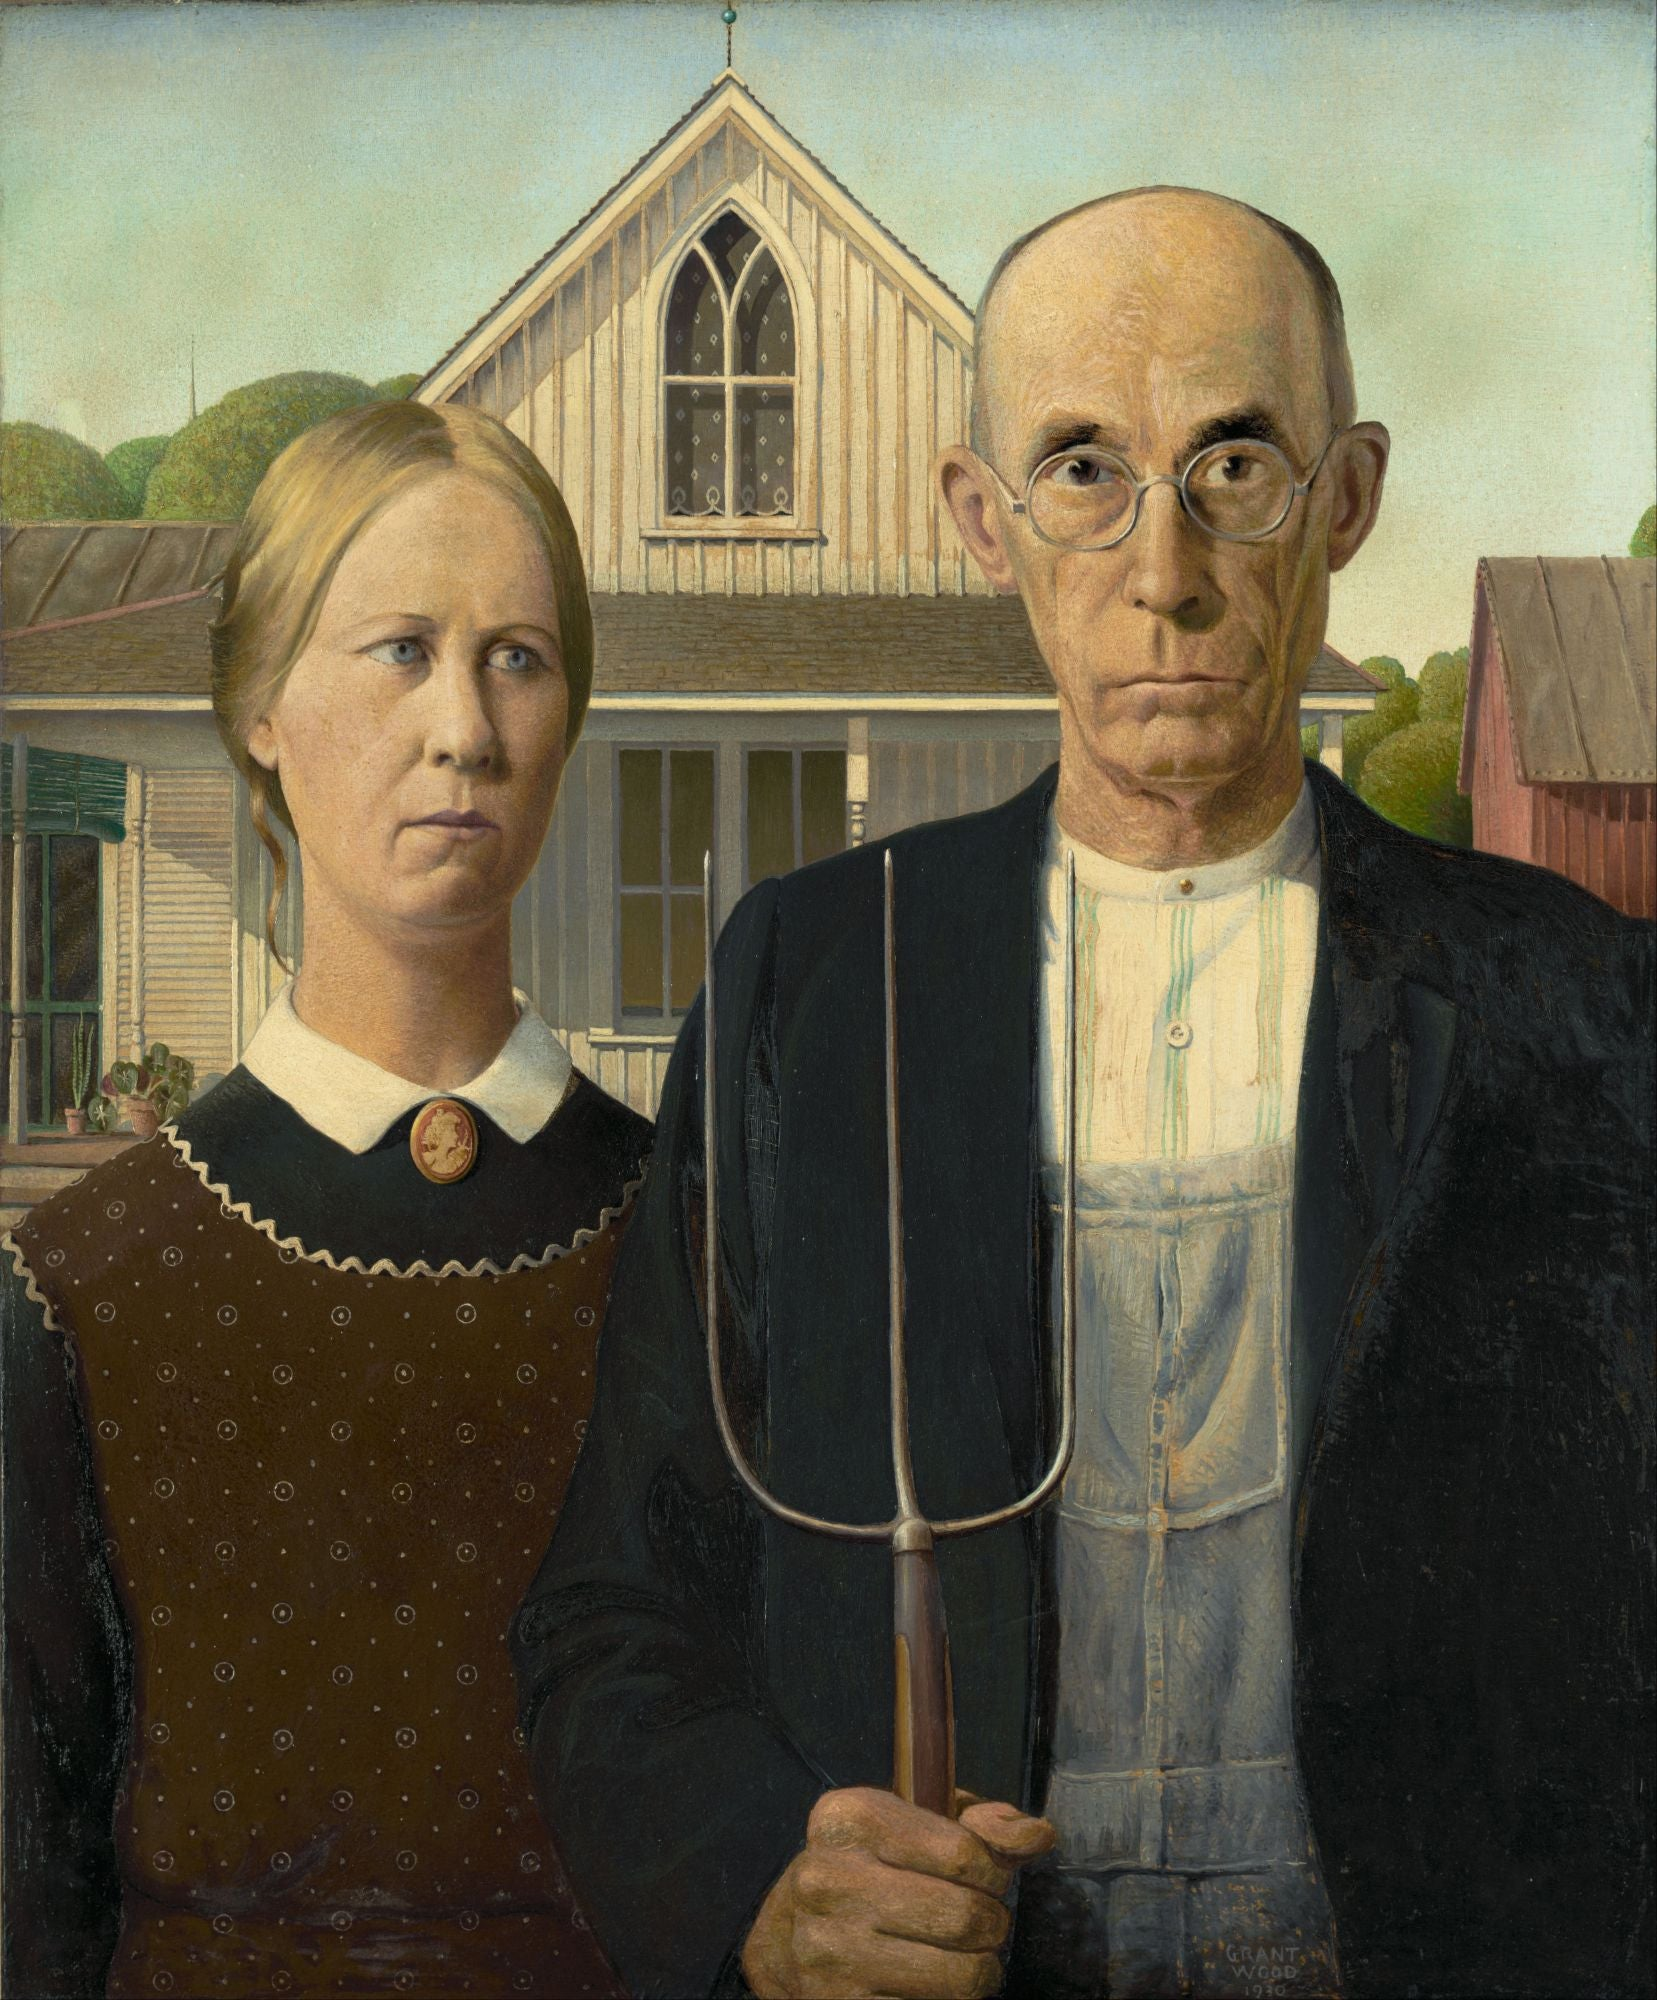 Grant Wood — Under 2000 | Buy Posters, Frames, Canvas, Digital Art & Large Size Prints